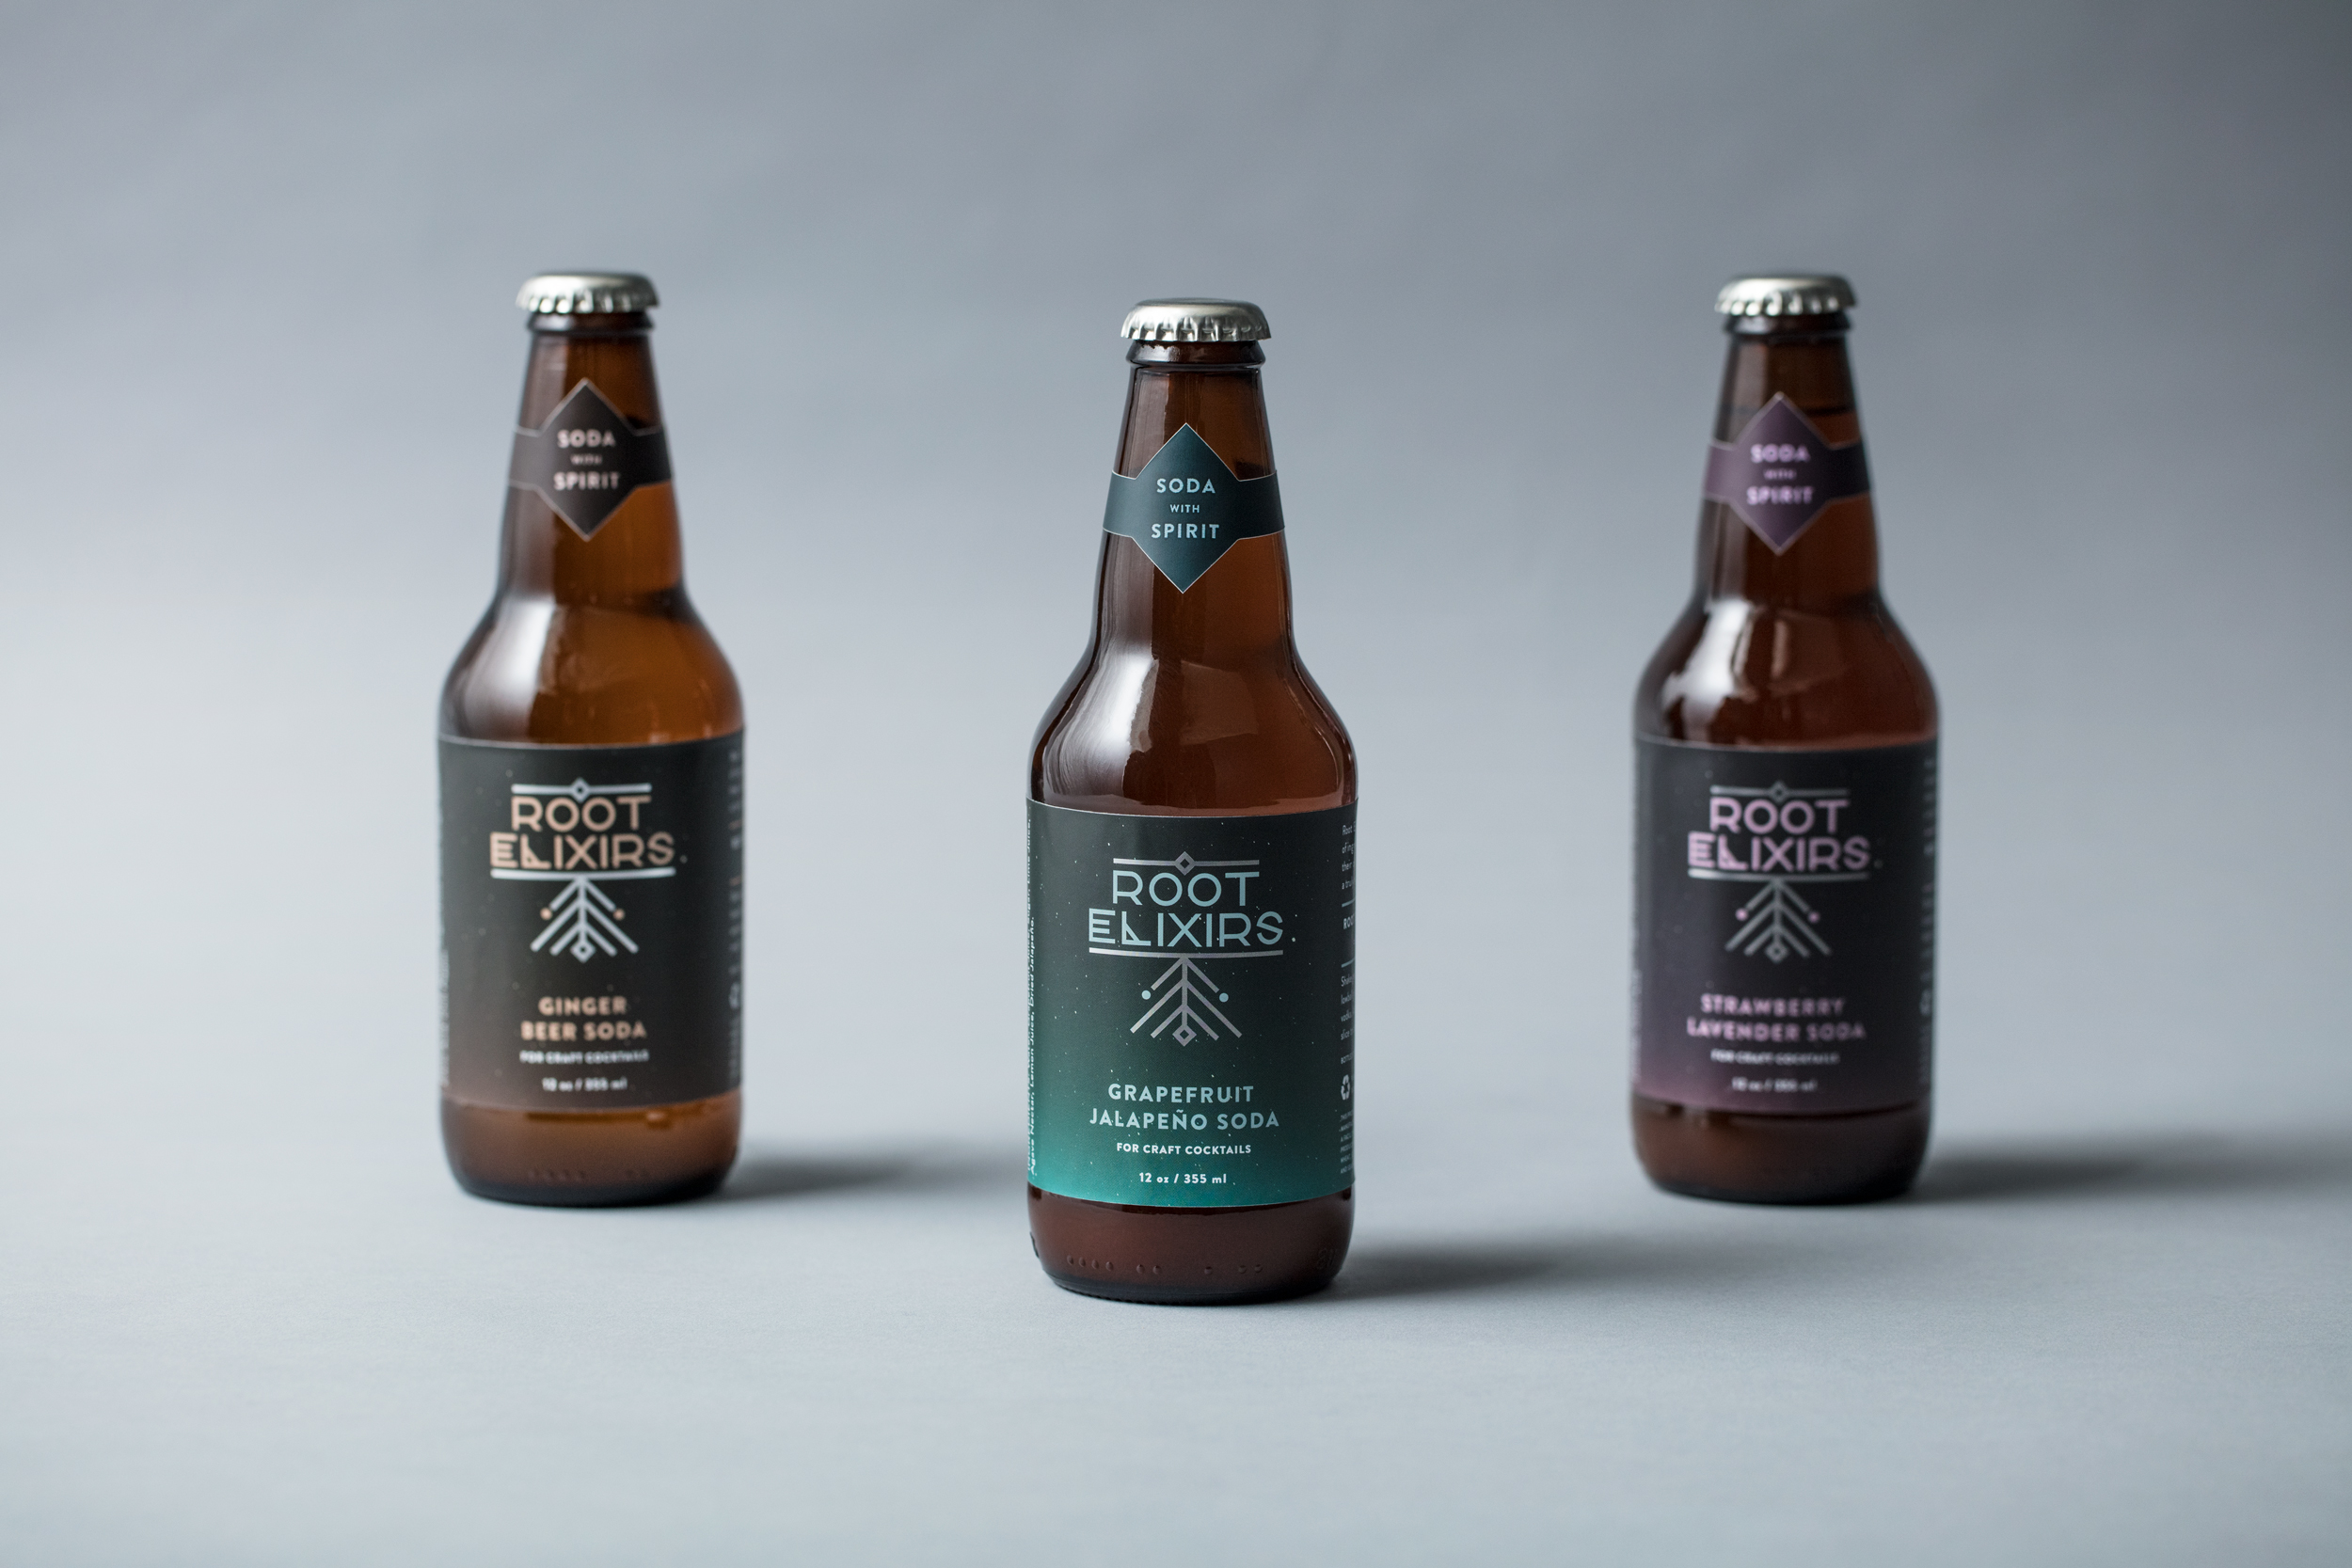 Color is used to distinguish the three flavors on labels. Silver foil on the logo elevates the product.